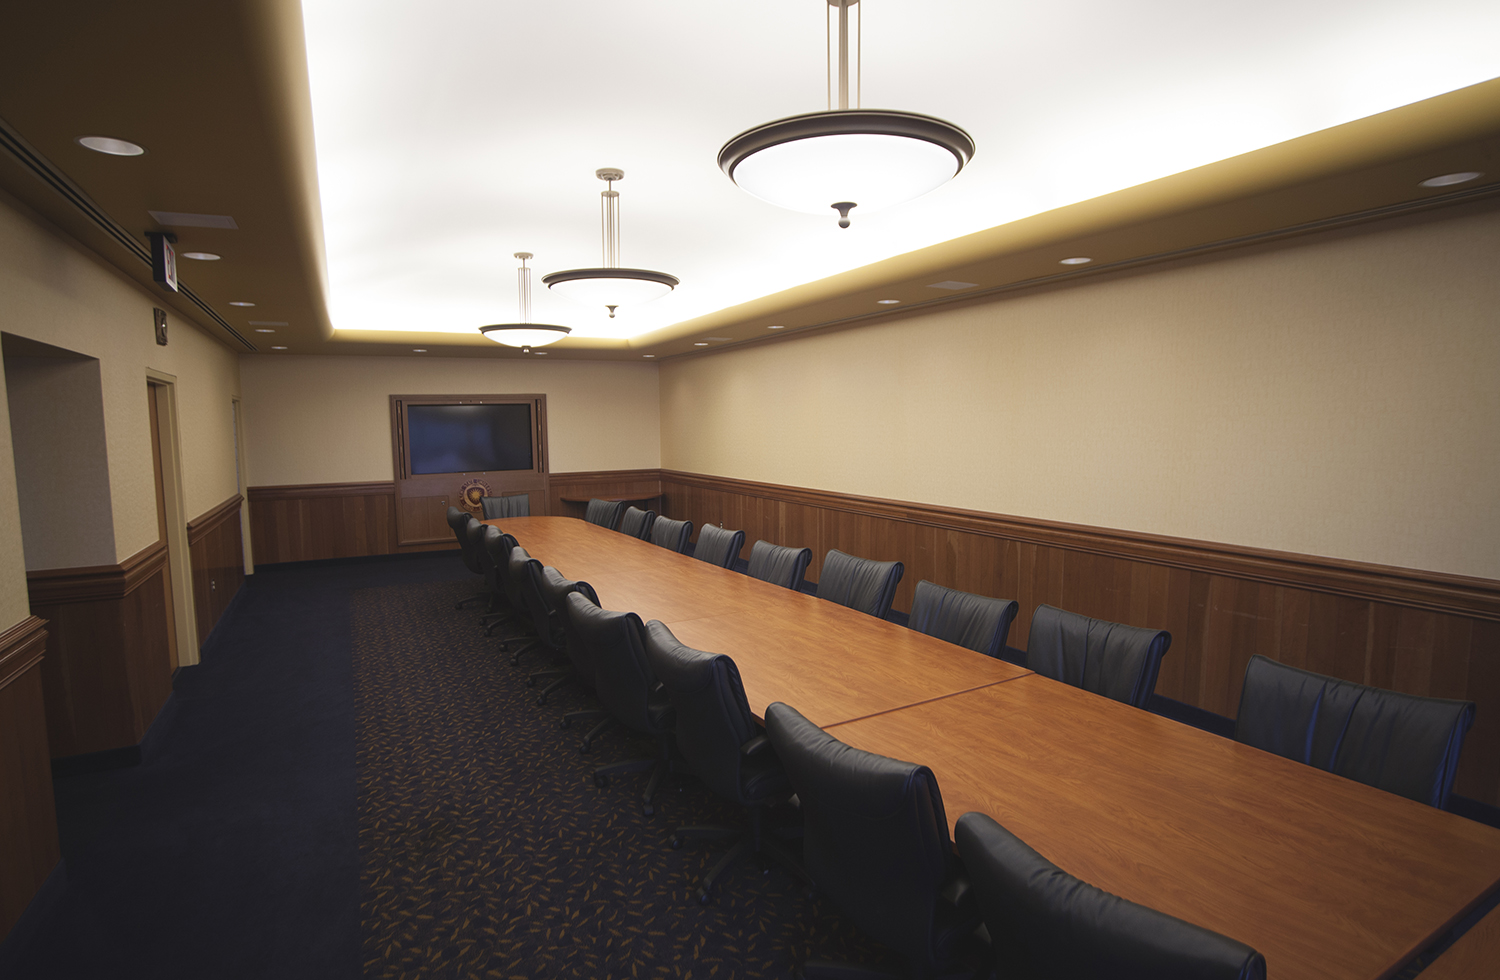 The Kent Student Center Alumni Suite. Learn more about Third Floor Event Spaces.